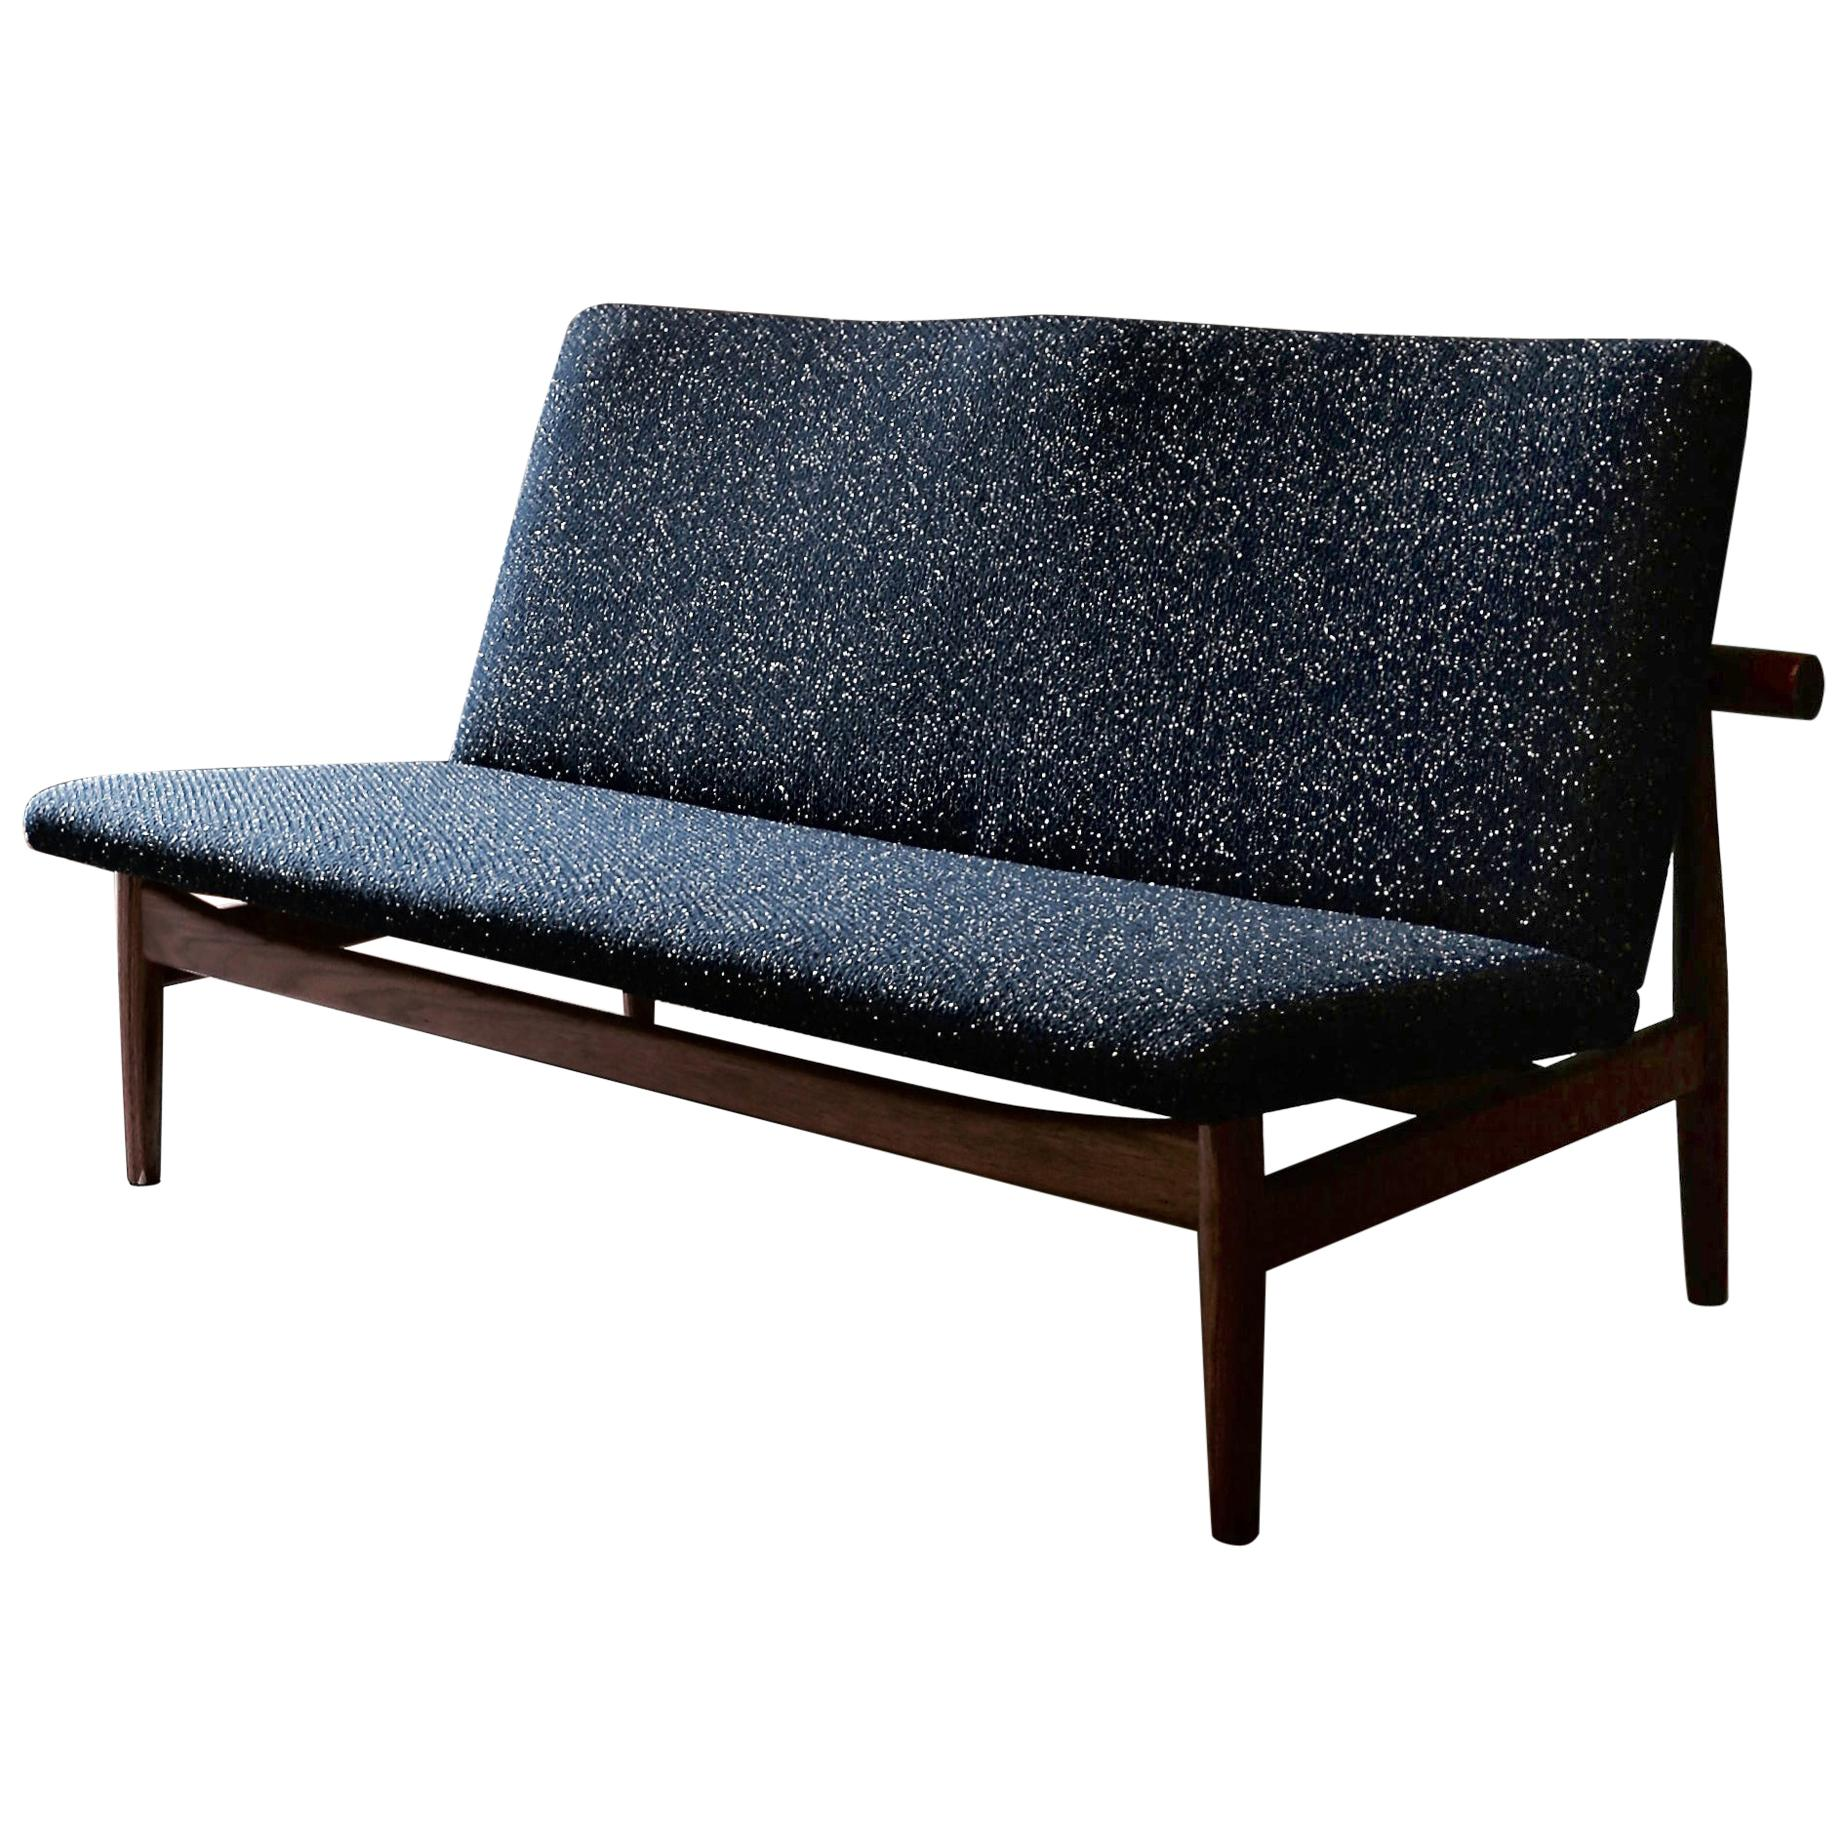 Japan Two-Seater Sofa